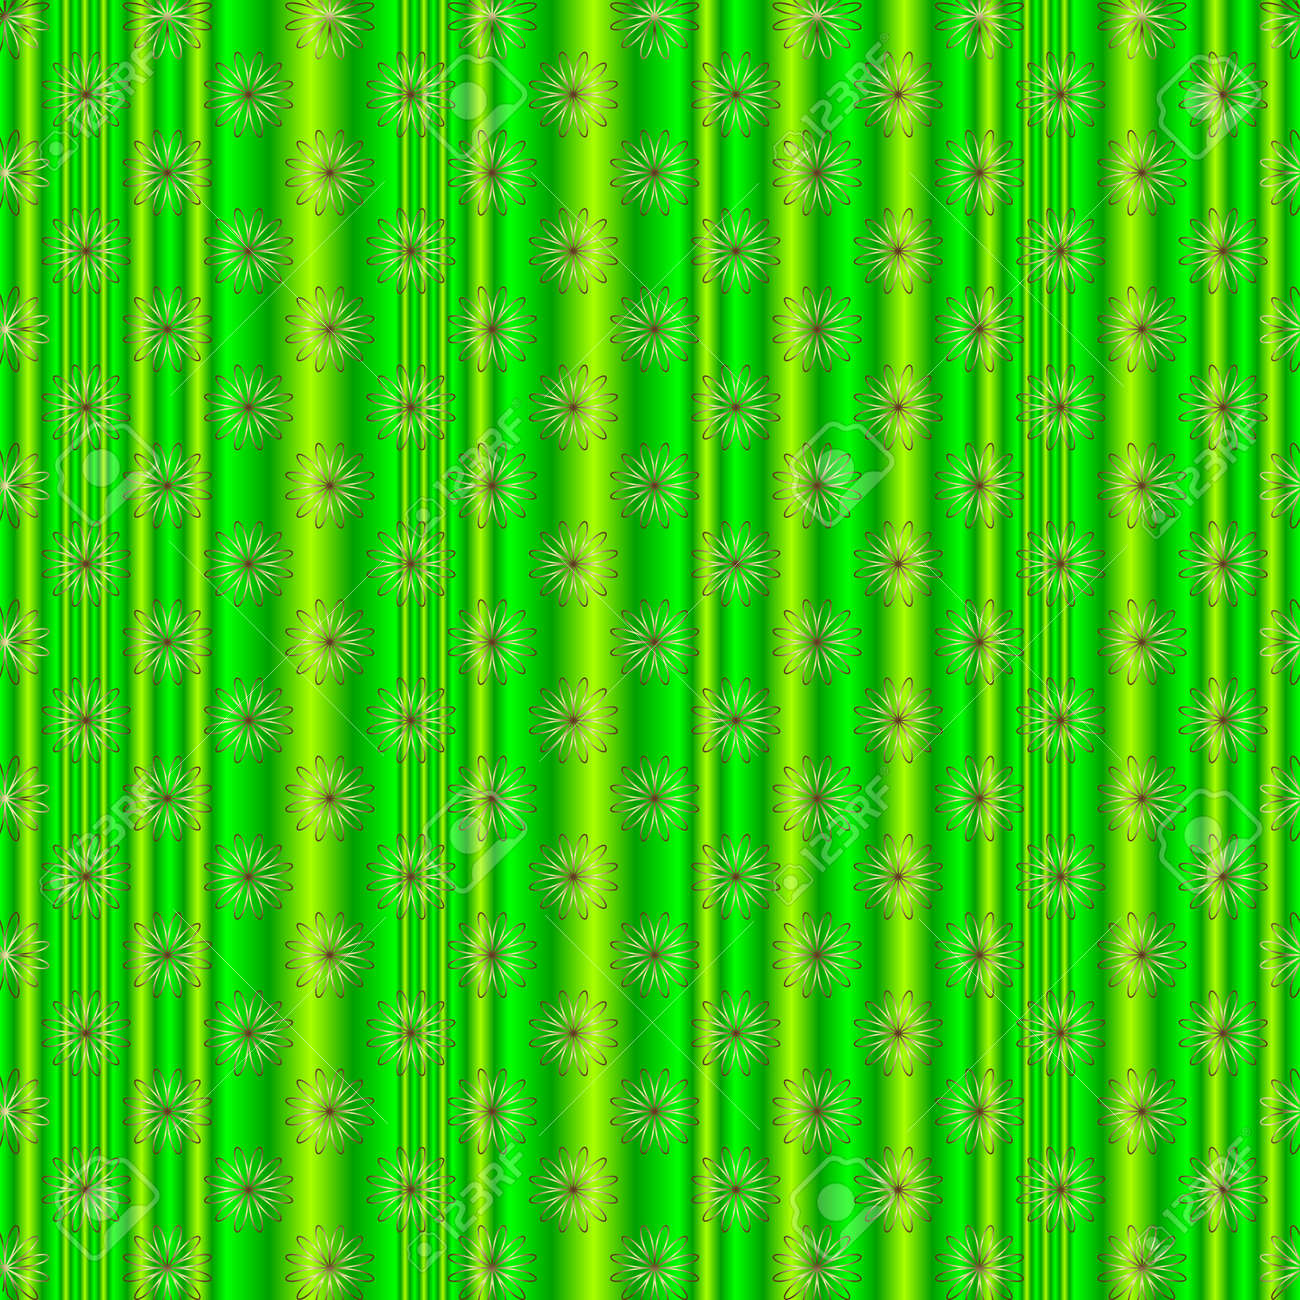 Green striped floral background Stock Vector - 4665819